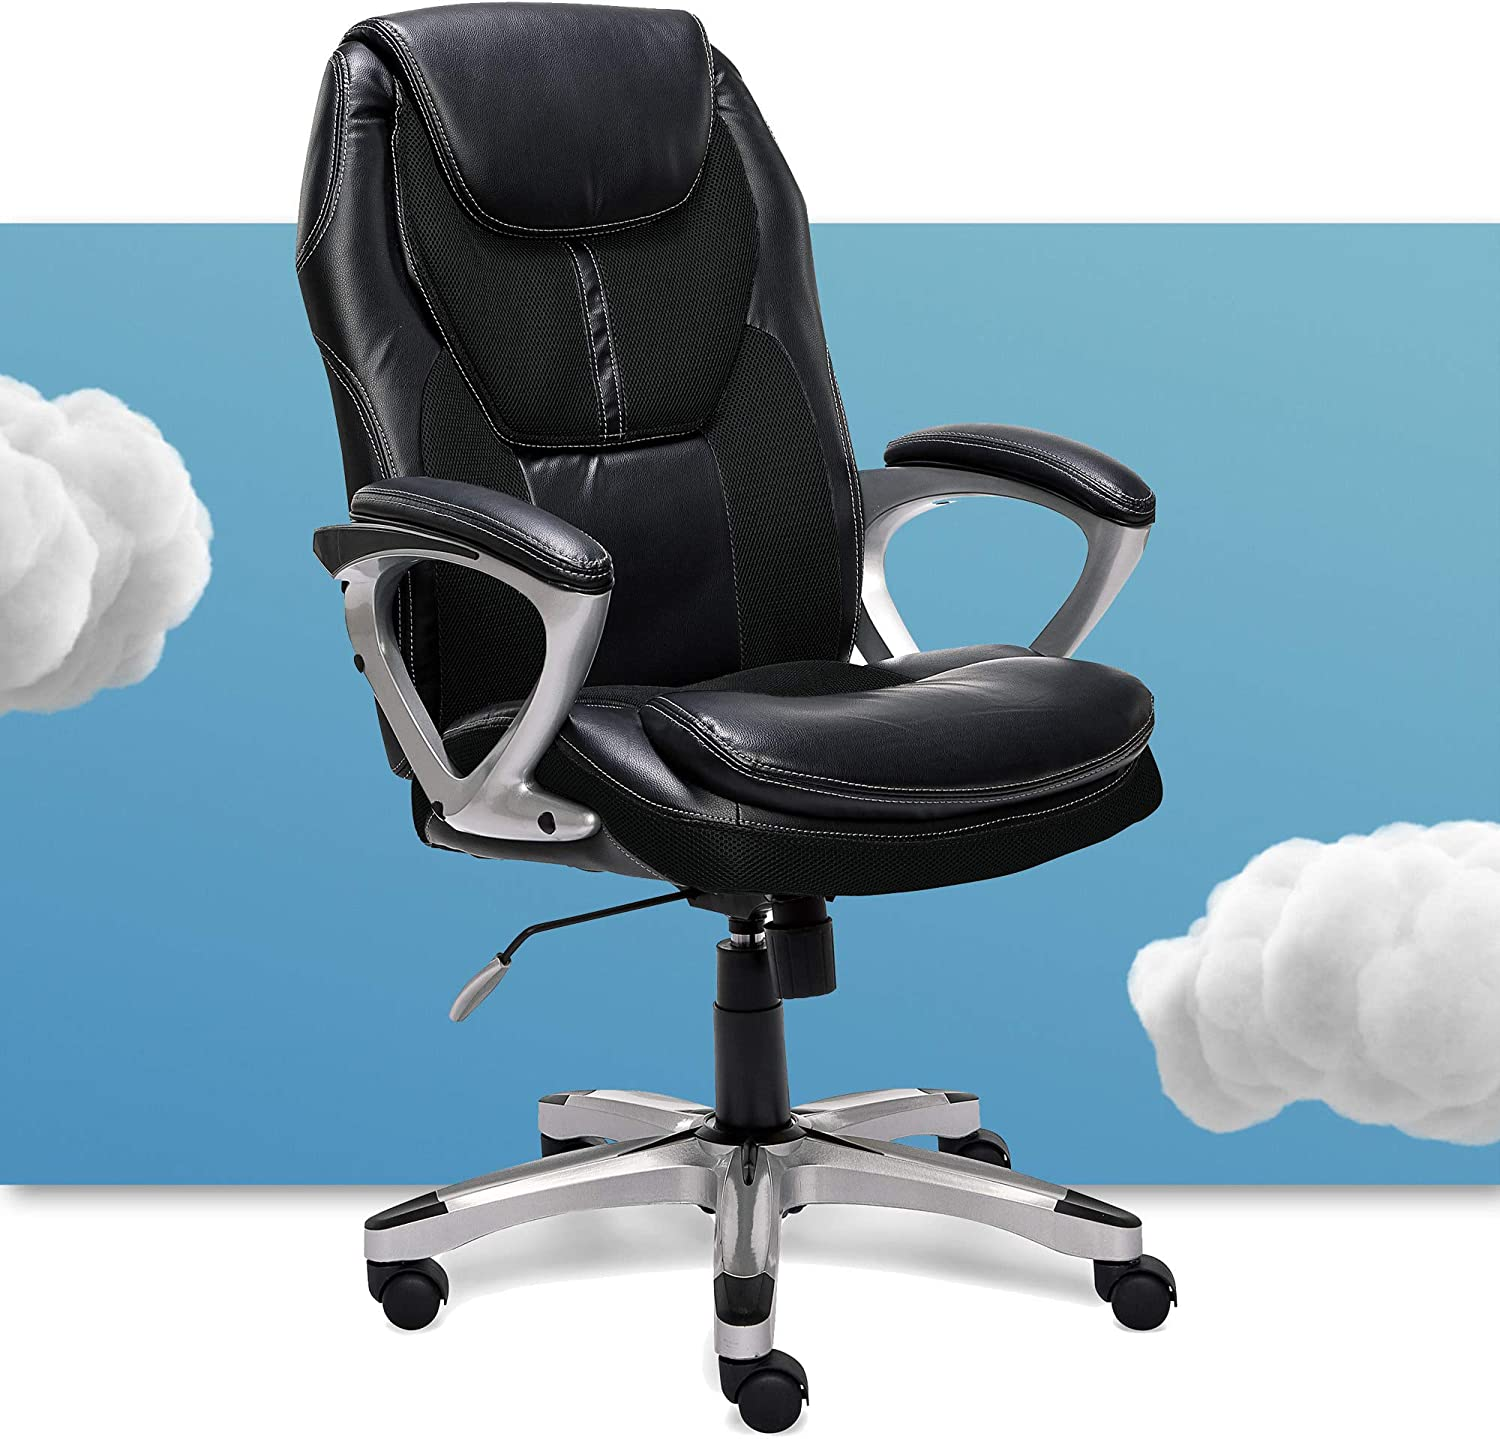 Amazon Com Serta Executive Office Padded Arms Adjustable Ergonomic Gaming Desk Chair With Lumbar Support Faux Leather And Mesh Black Furniture Decor